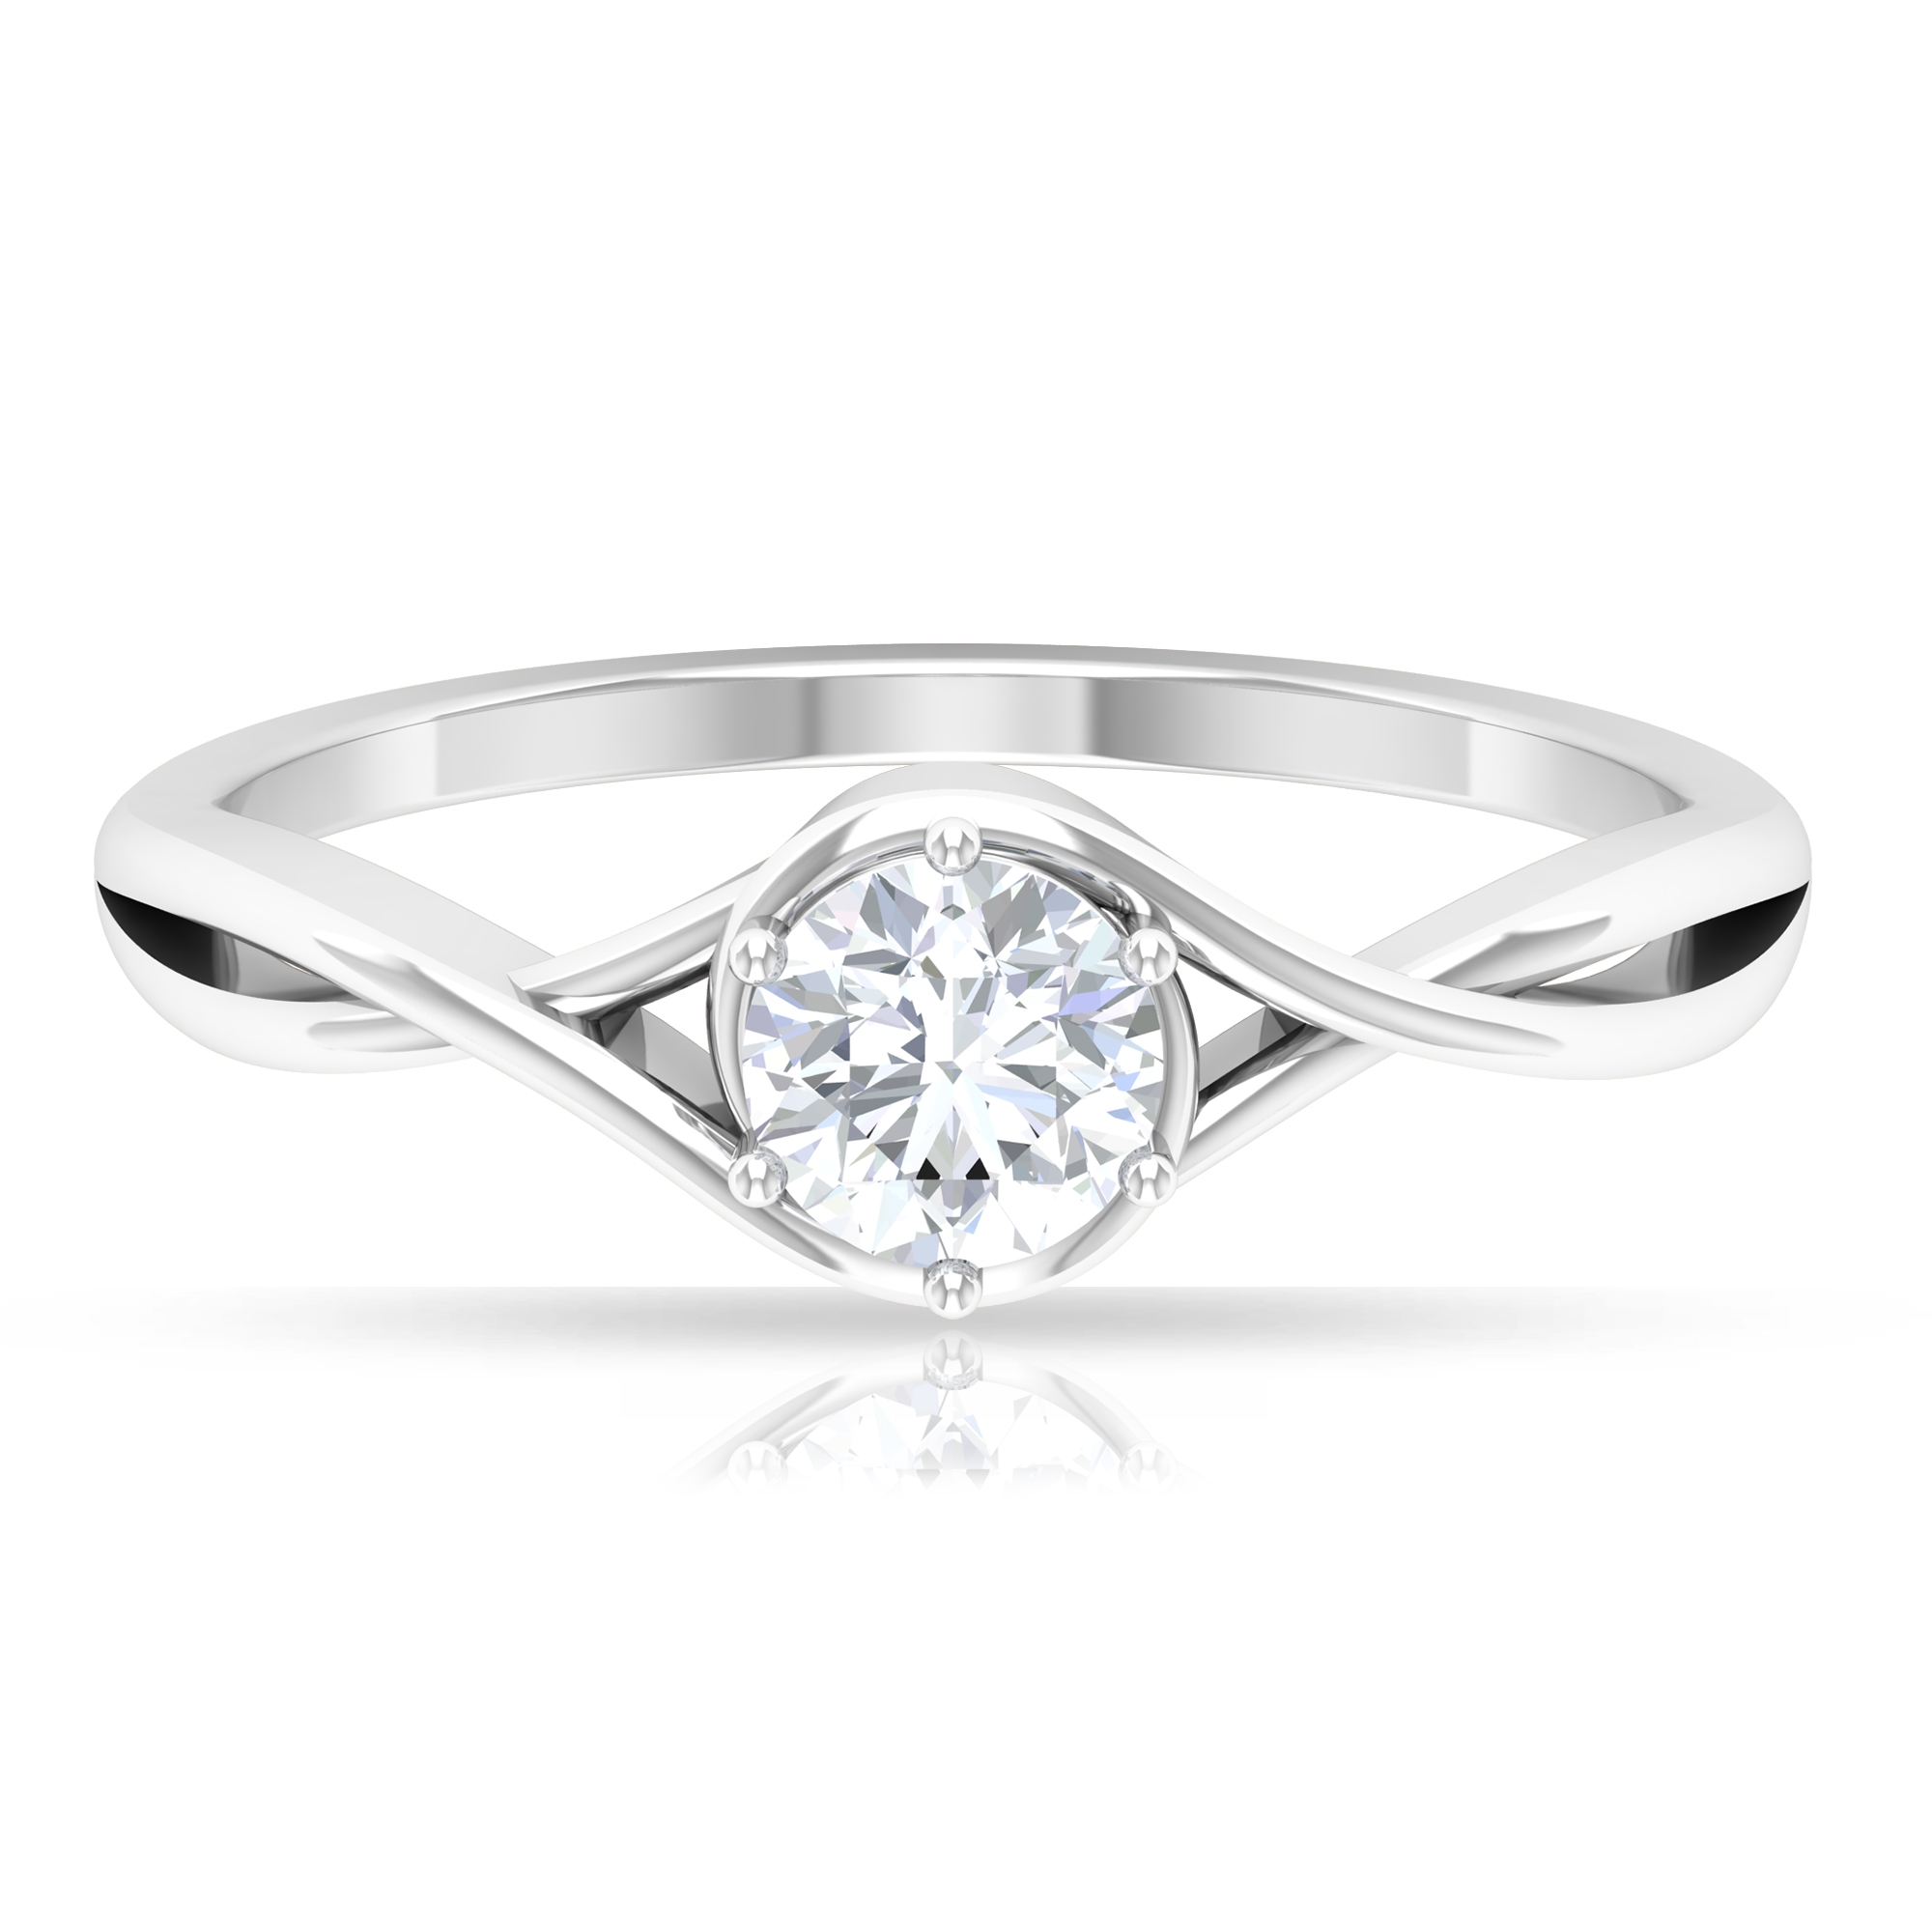 5 MM Round Cut Diamond Solitaire Ring in 6 Prong Setting with Crossover Shank